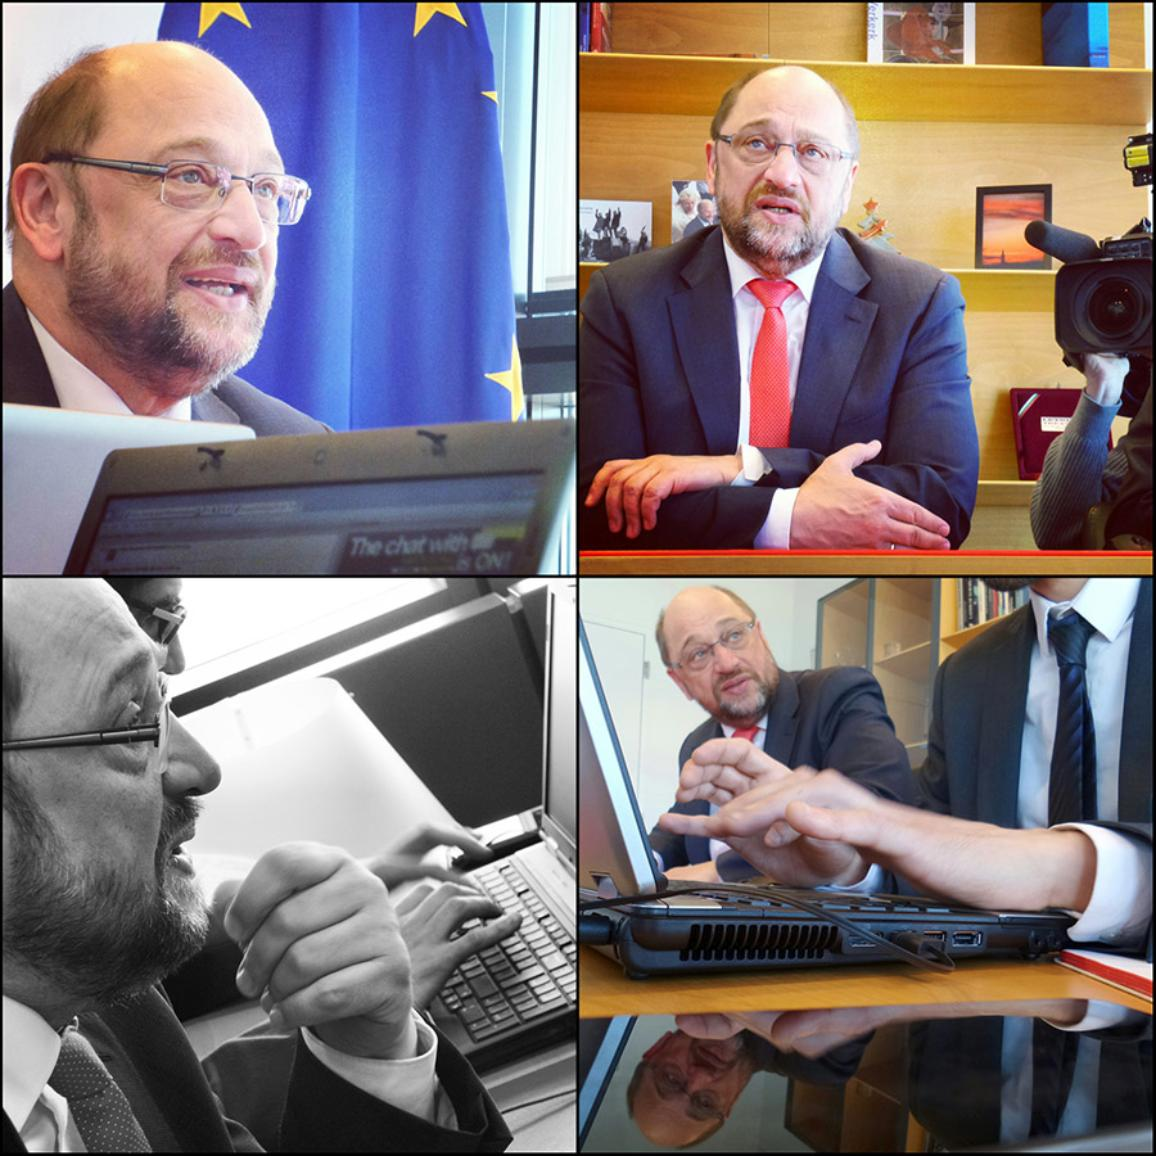 Facebook chat write-up with European Parliament President Martin Schulz